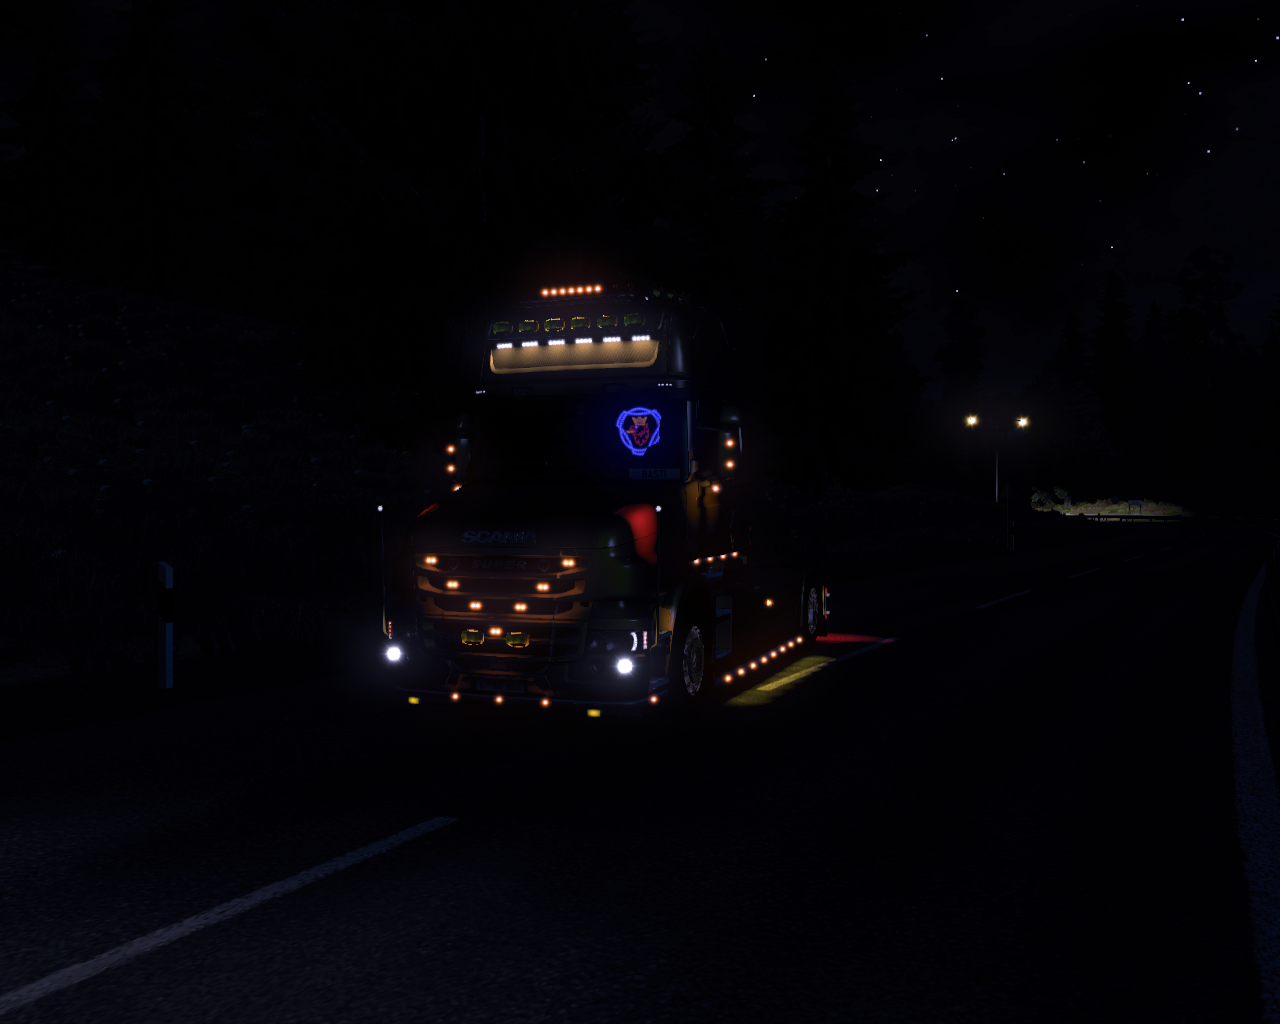 ets2_00192.png